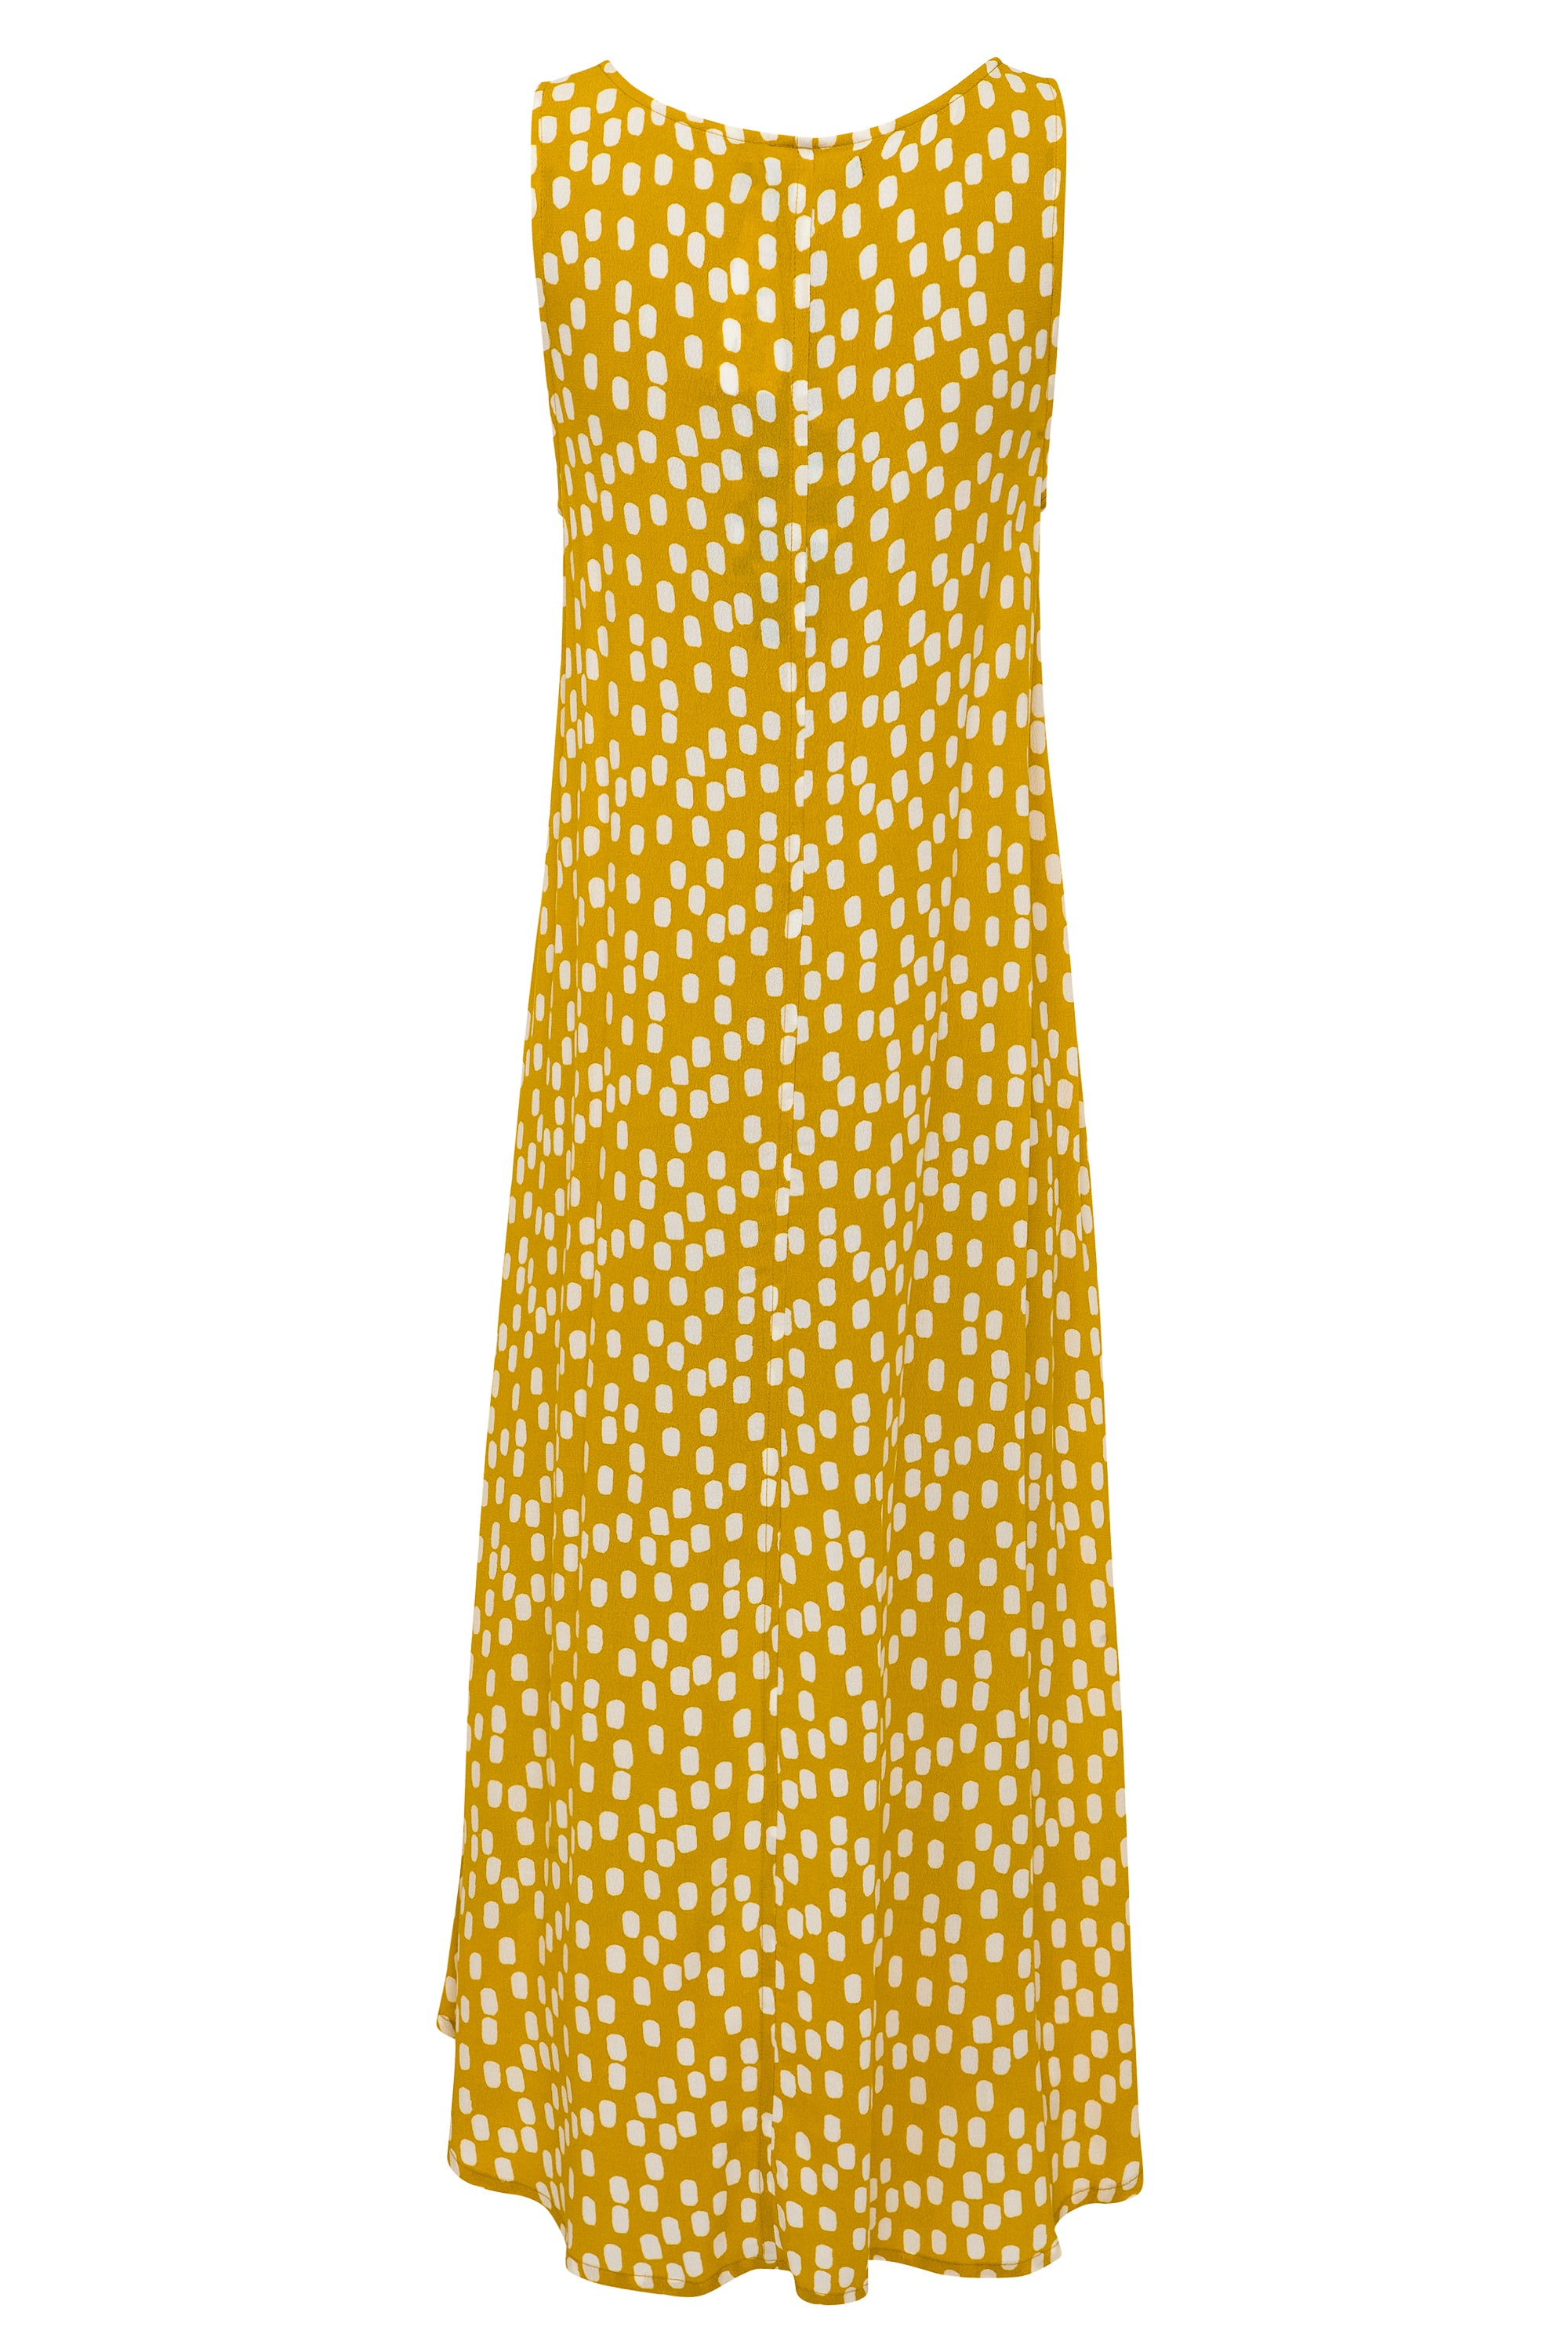 Mia Dress In Chartreuse